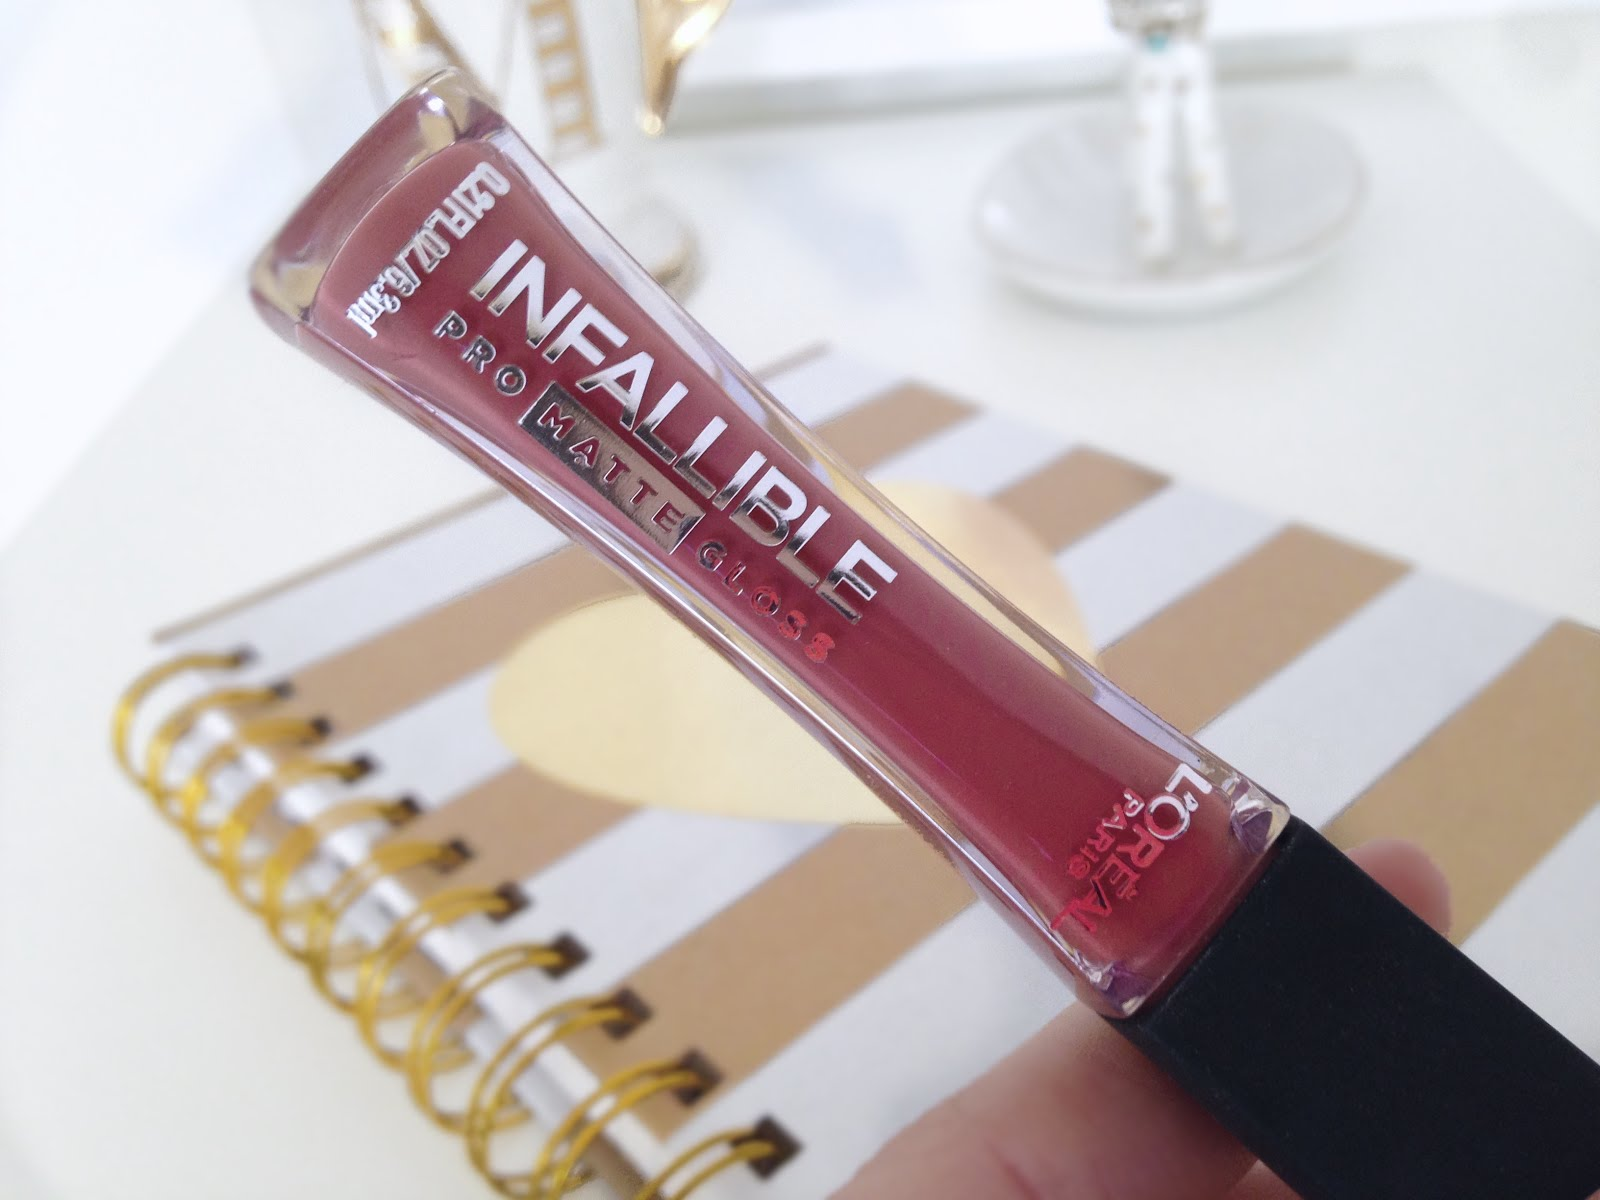 L'Oreal Pro Matte Gloss Bare Attraction